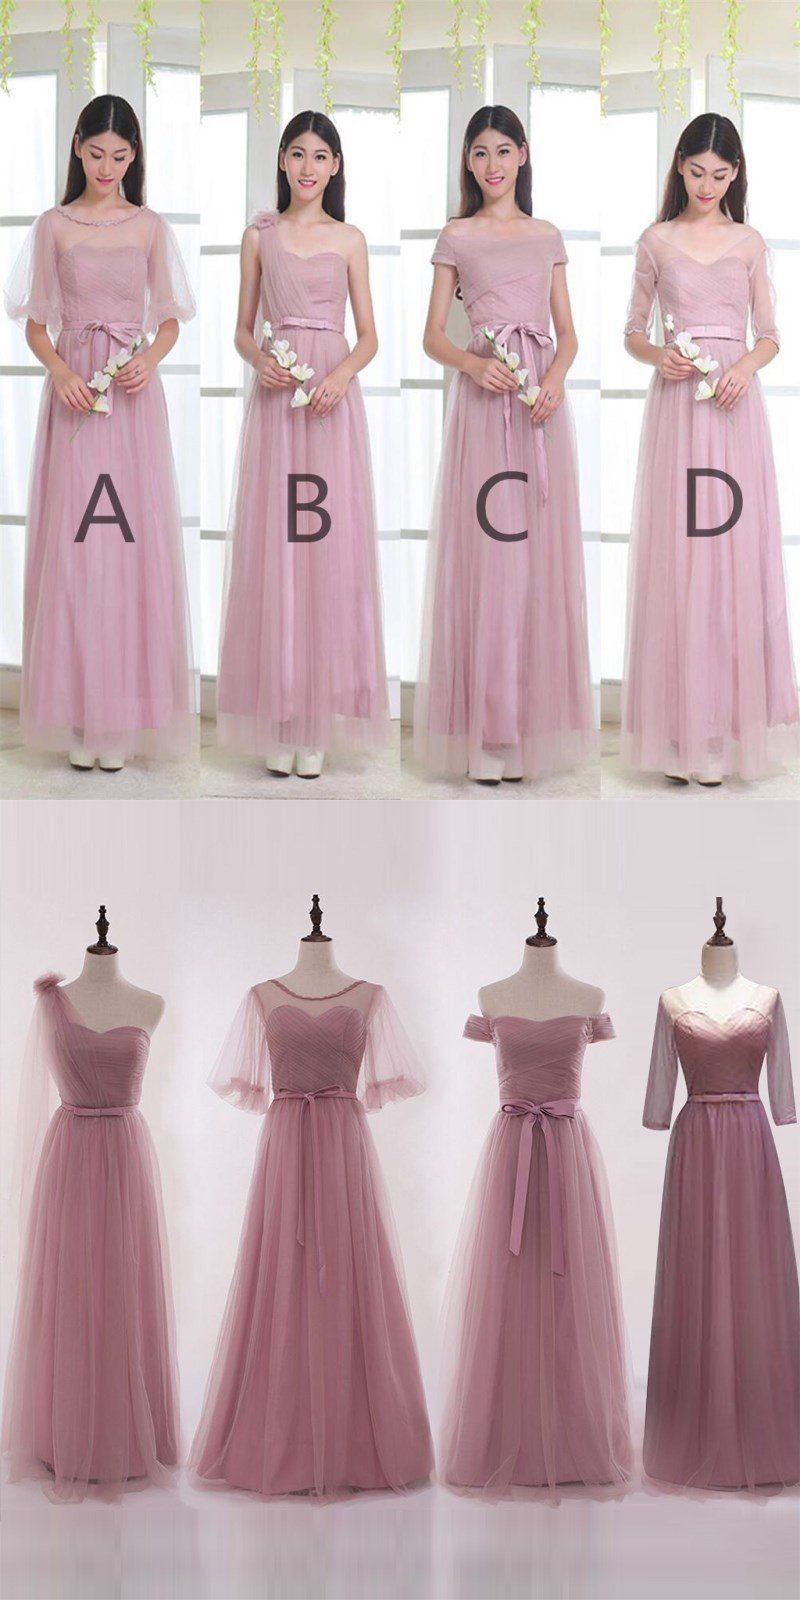 26c2f6505177 Mismatched Elegant Dusty Pink Soft Tulle Long Bridesmaid Dresses, Cheap  Custom Long Bridesmaid Dresses, Affordable Bridesmaid Gowns, BD013